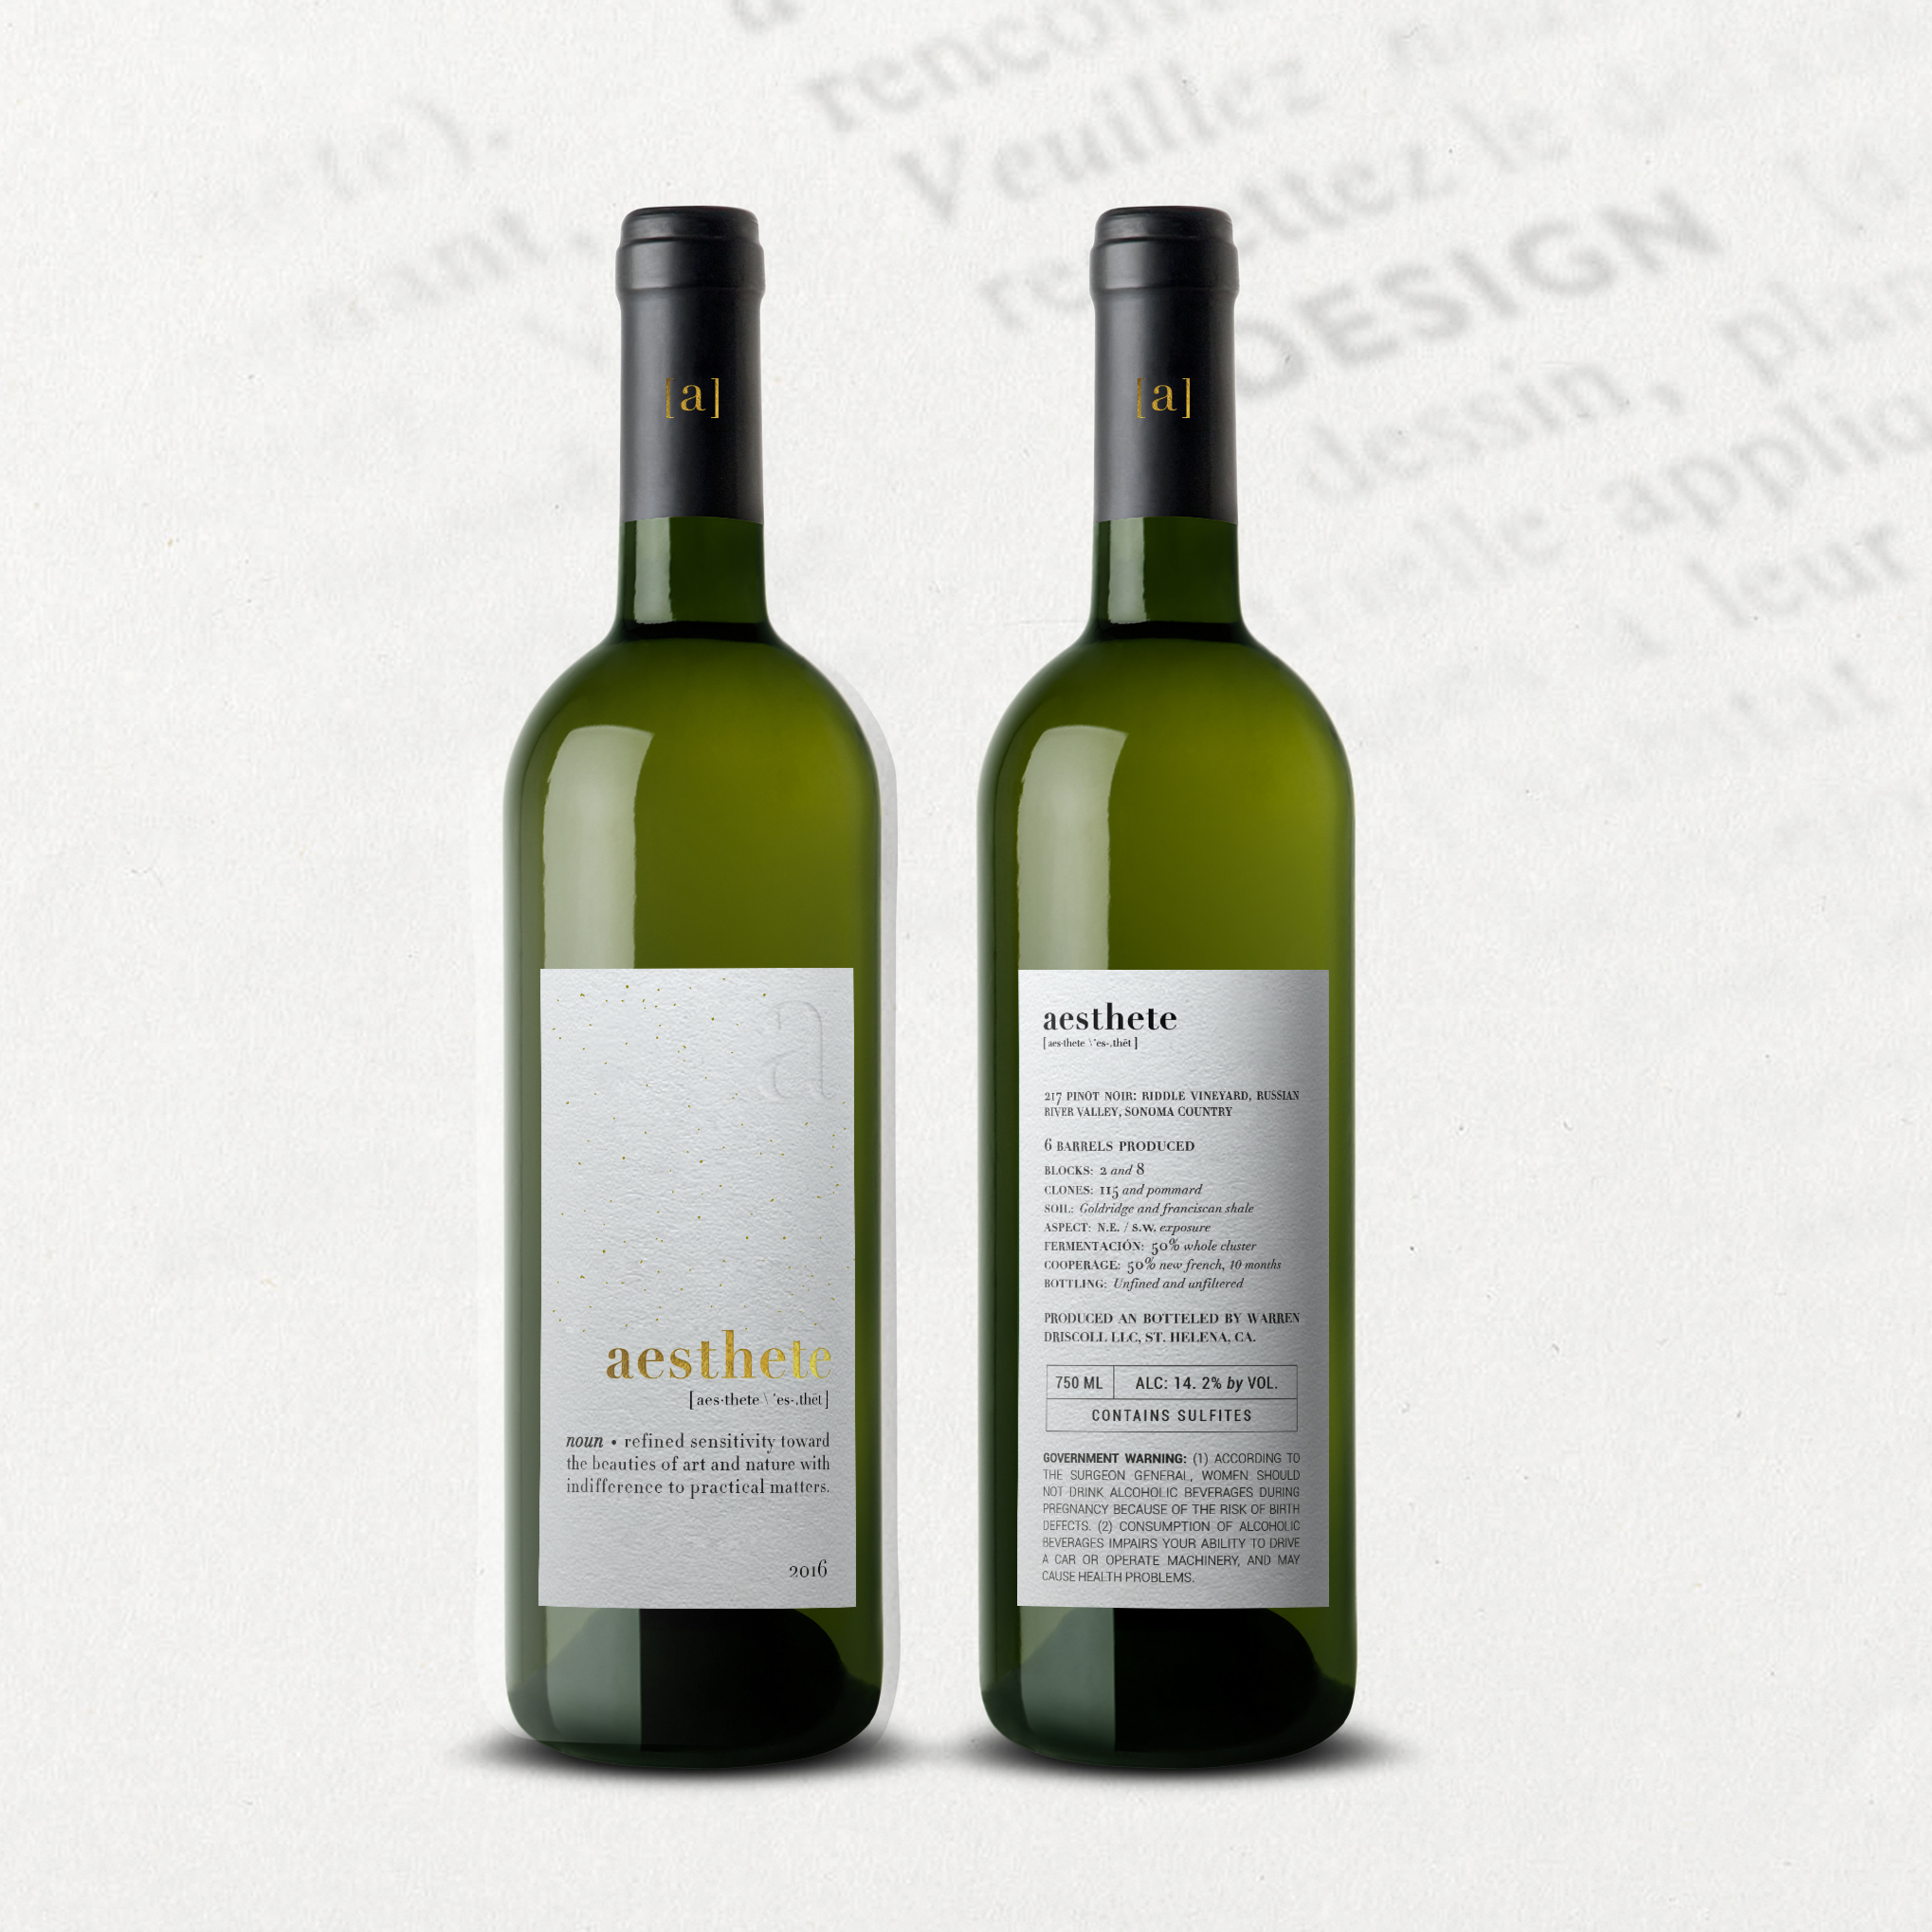 Interesting Bottles How To Design A Wine Label The Ultimate Guide 99designs